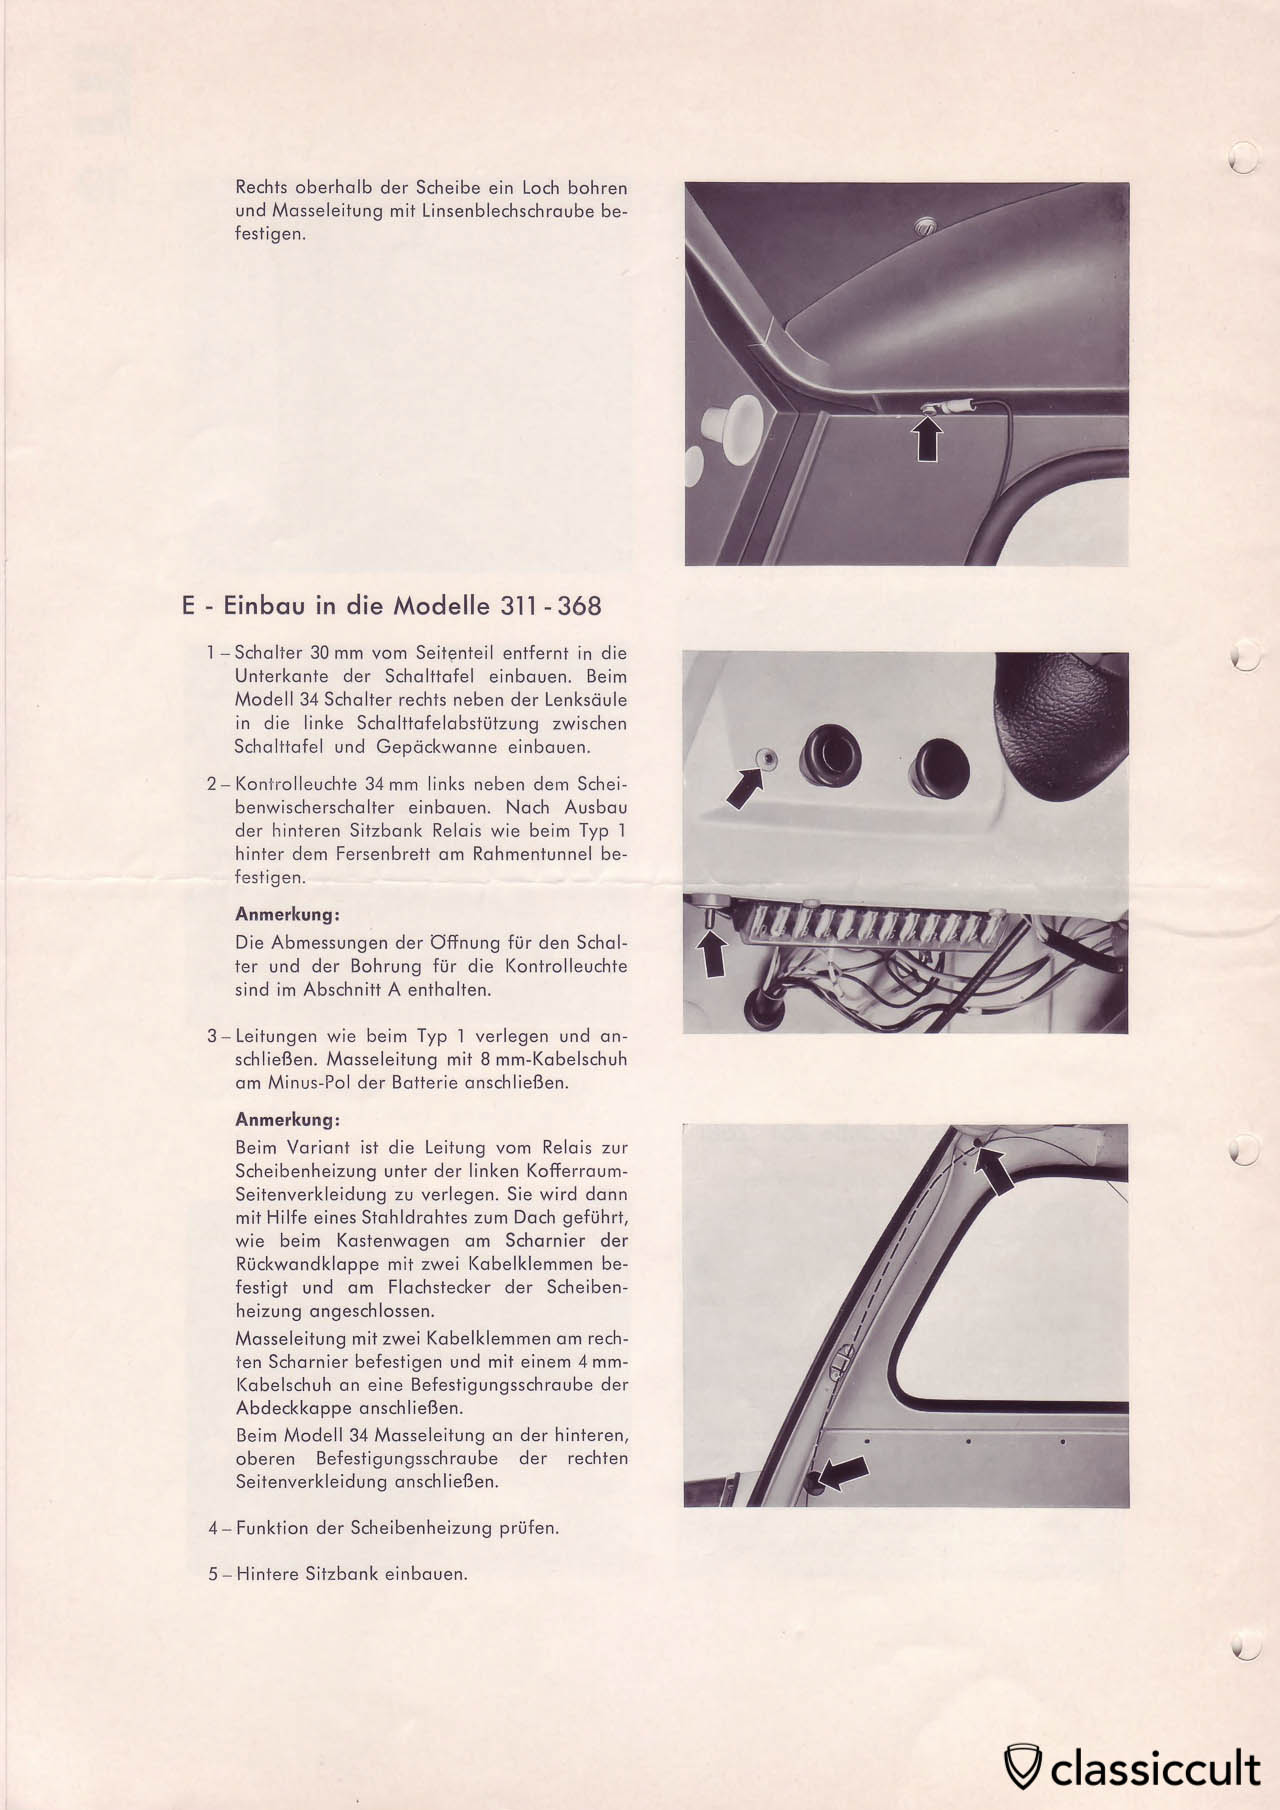 Heated rear window in VW Type 3 mounting instructions.